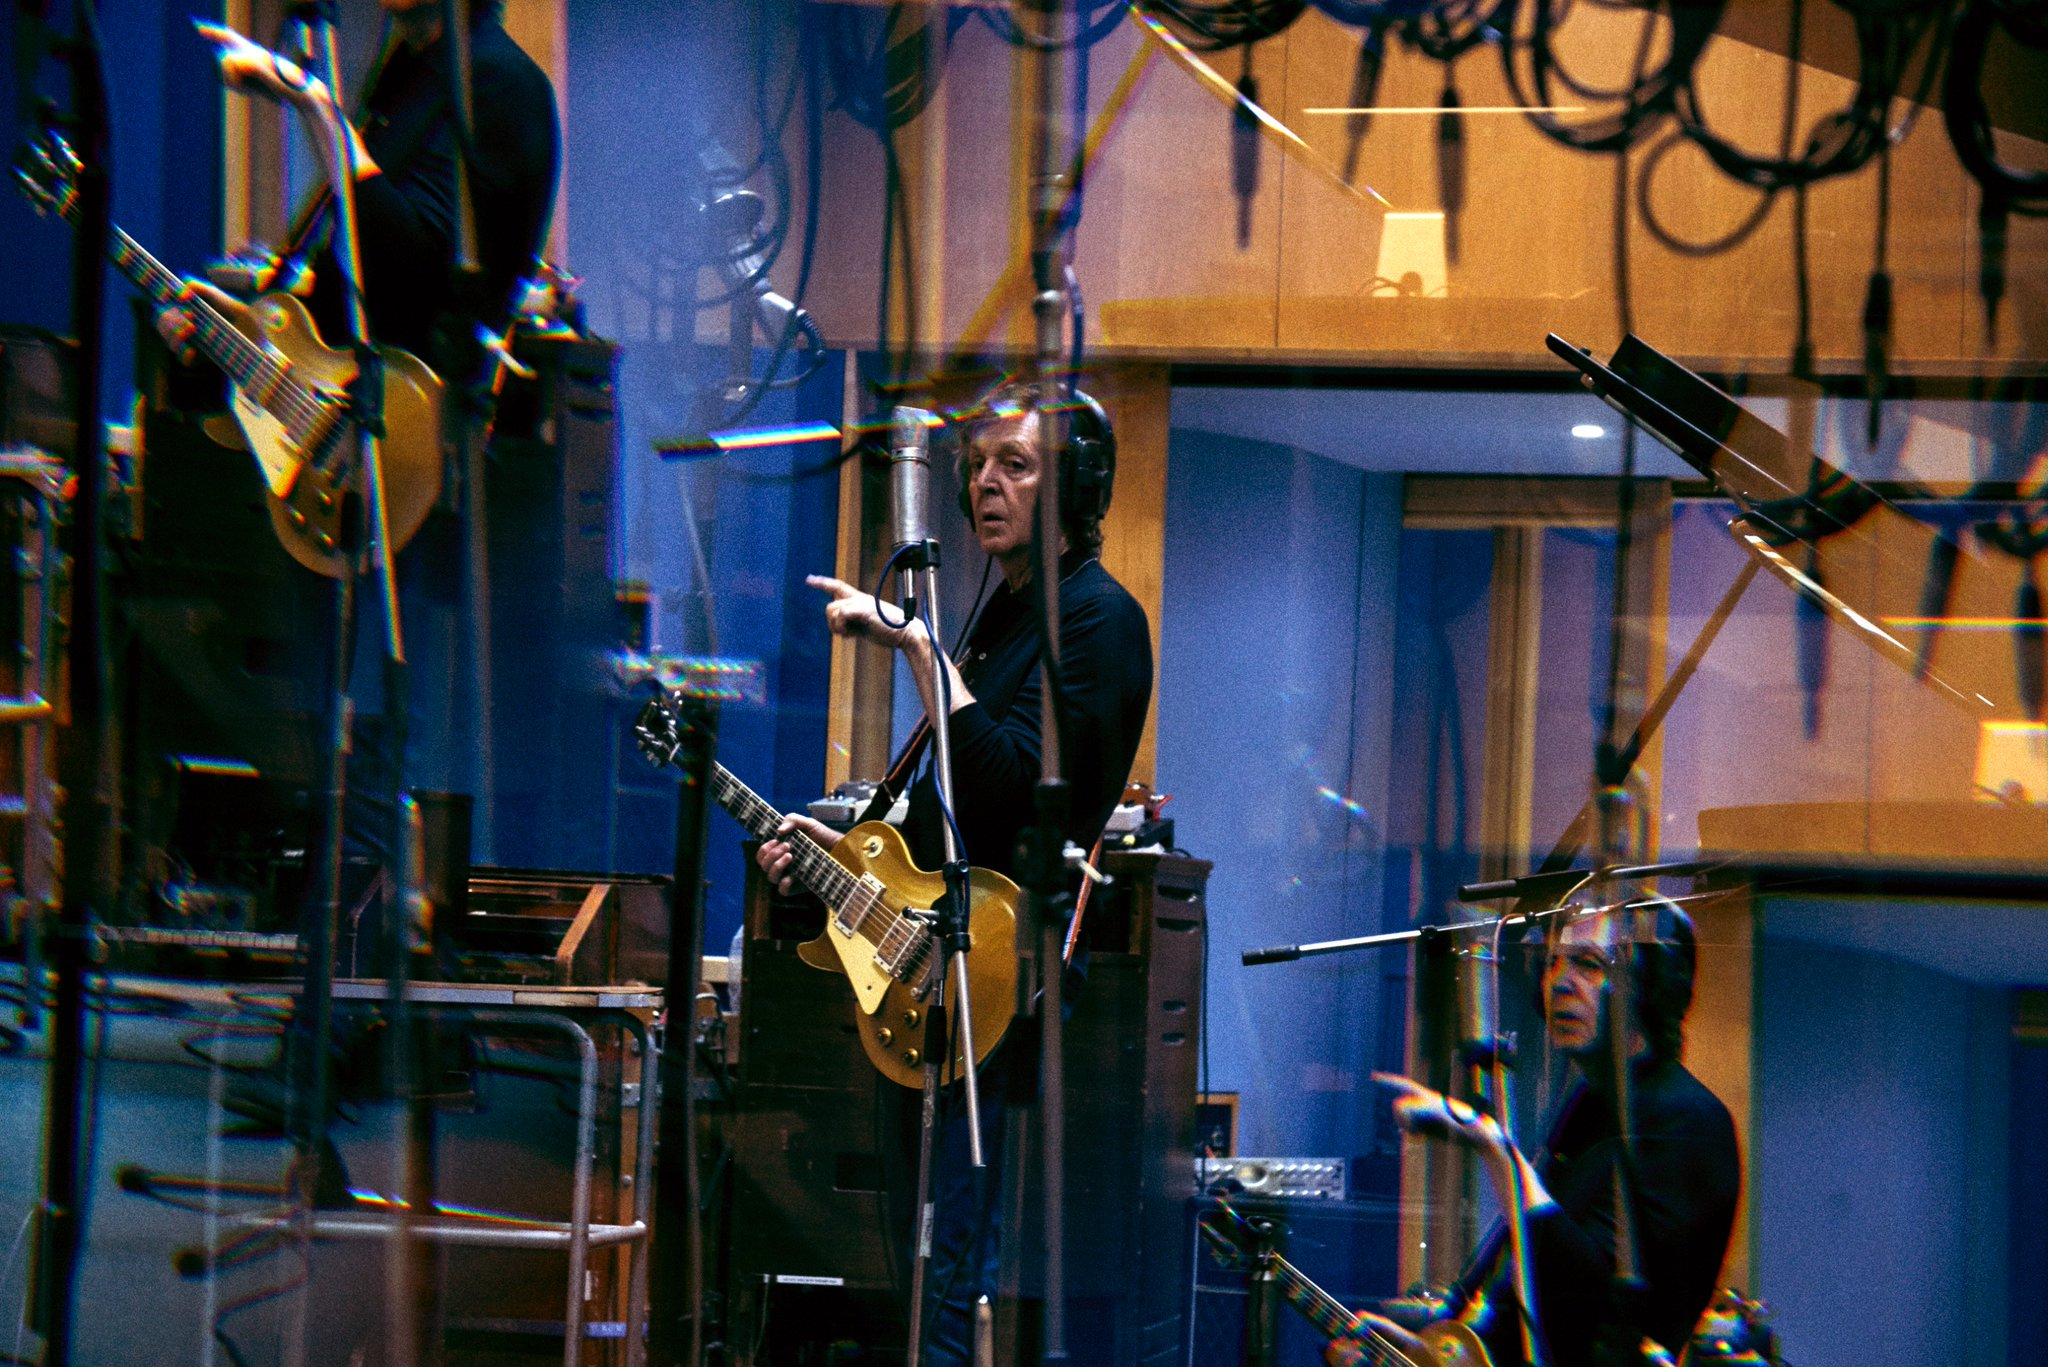 Paul during the recording of #EgyptStation @AbbeyRoad, November 2017 https://t.co/RWEtRQu5qf